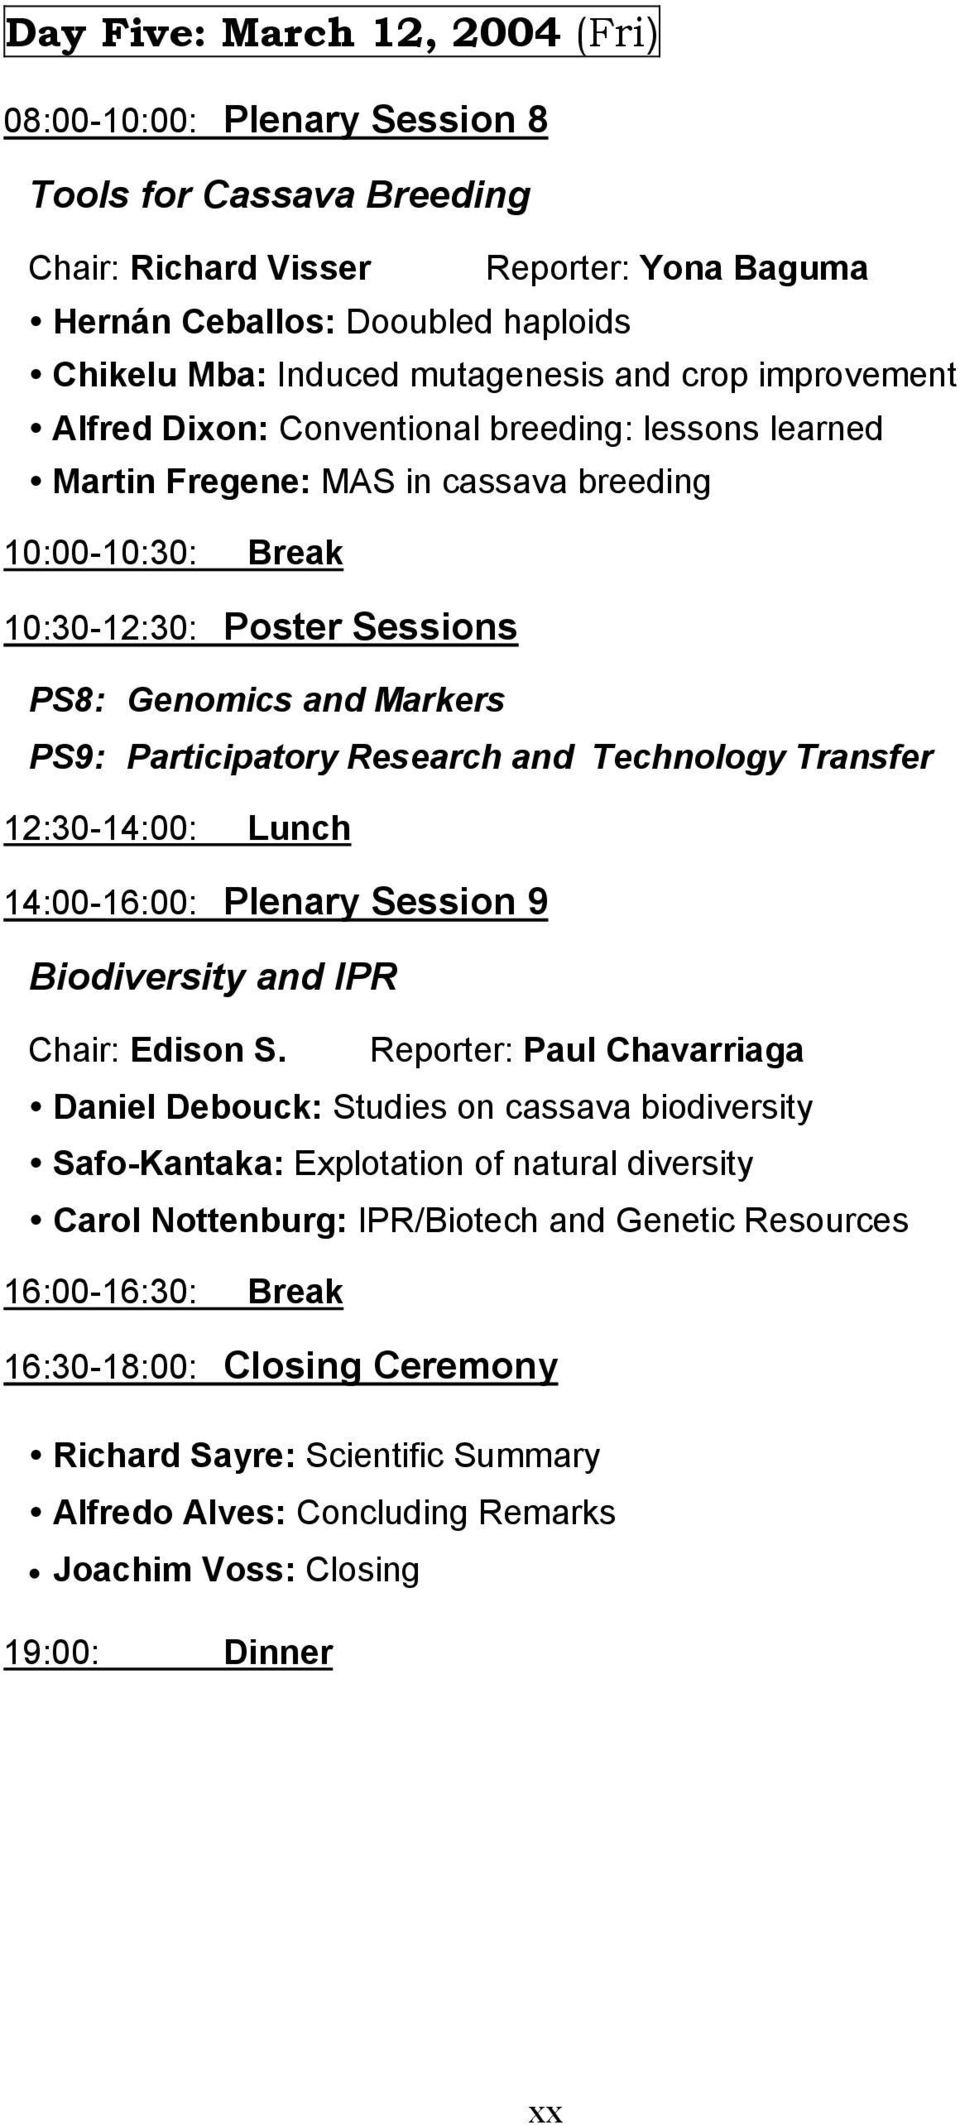 PS9: Participatory Research and Technology Transfer 12:30-14:00: Lunch 14:00-16:00: Plenary Session 9 Biodiversity and IPR Chair: Edison S.